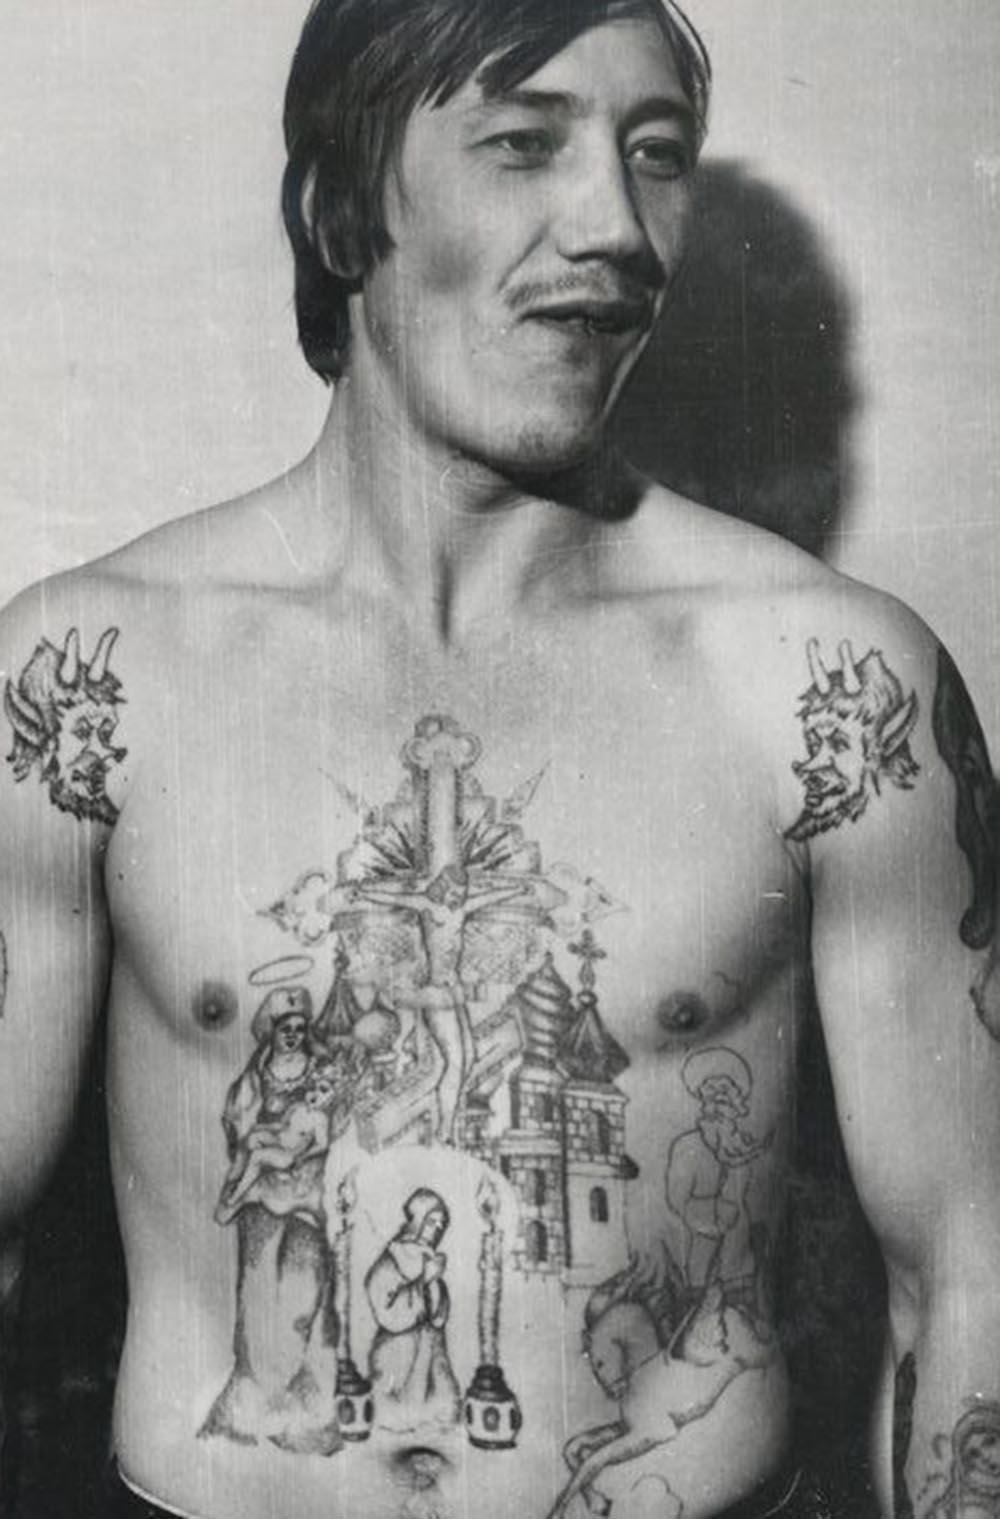 The devils on the shoulders of this inmate symbolise a hatred of authority and the prison structure. This type of tattoo is known as an 'oskal,' or grin, a baring of teeth towards the system. They are sometimes accompanied by anti-Soviet texts.